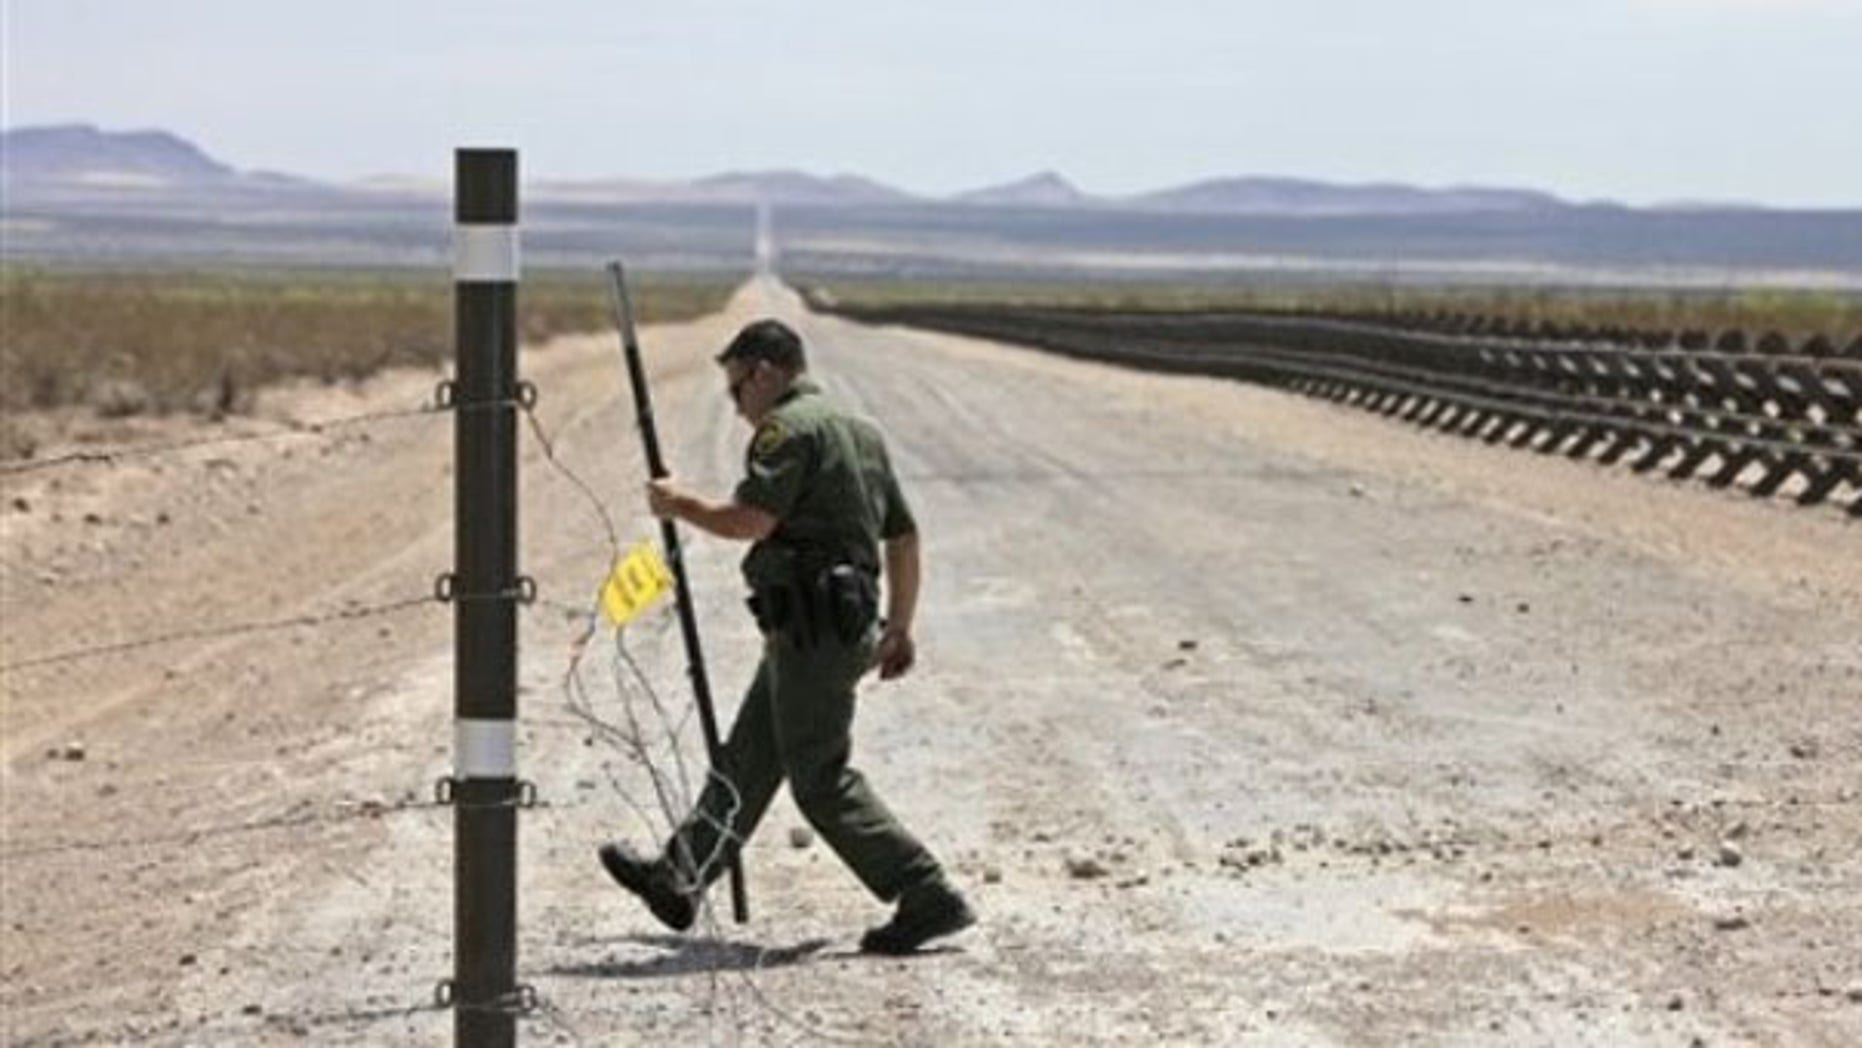 In this Aug. 6, 2009, photo, a U.S. Border Patrol agent opens a barbed wire fence leading to a road lined with vehicle barriers marking the U.S-Mexico border near Hermanas, N.M. (AP Photo)